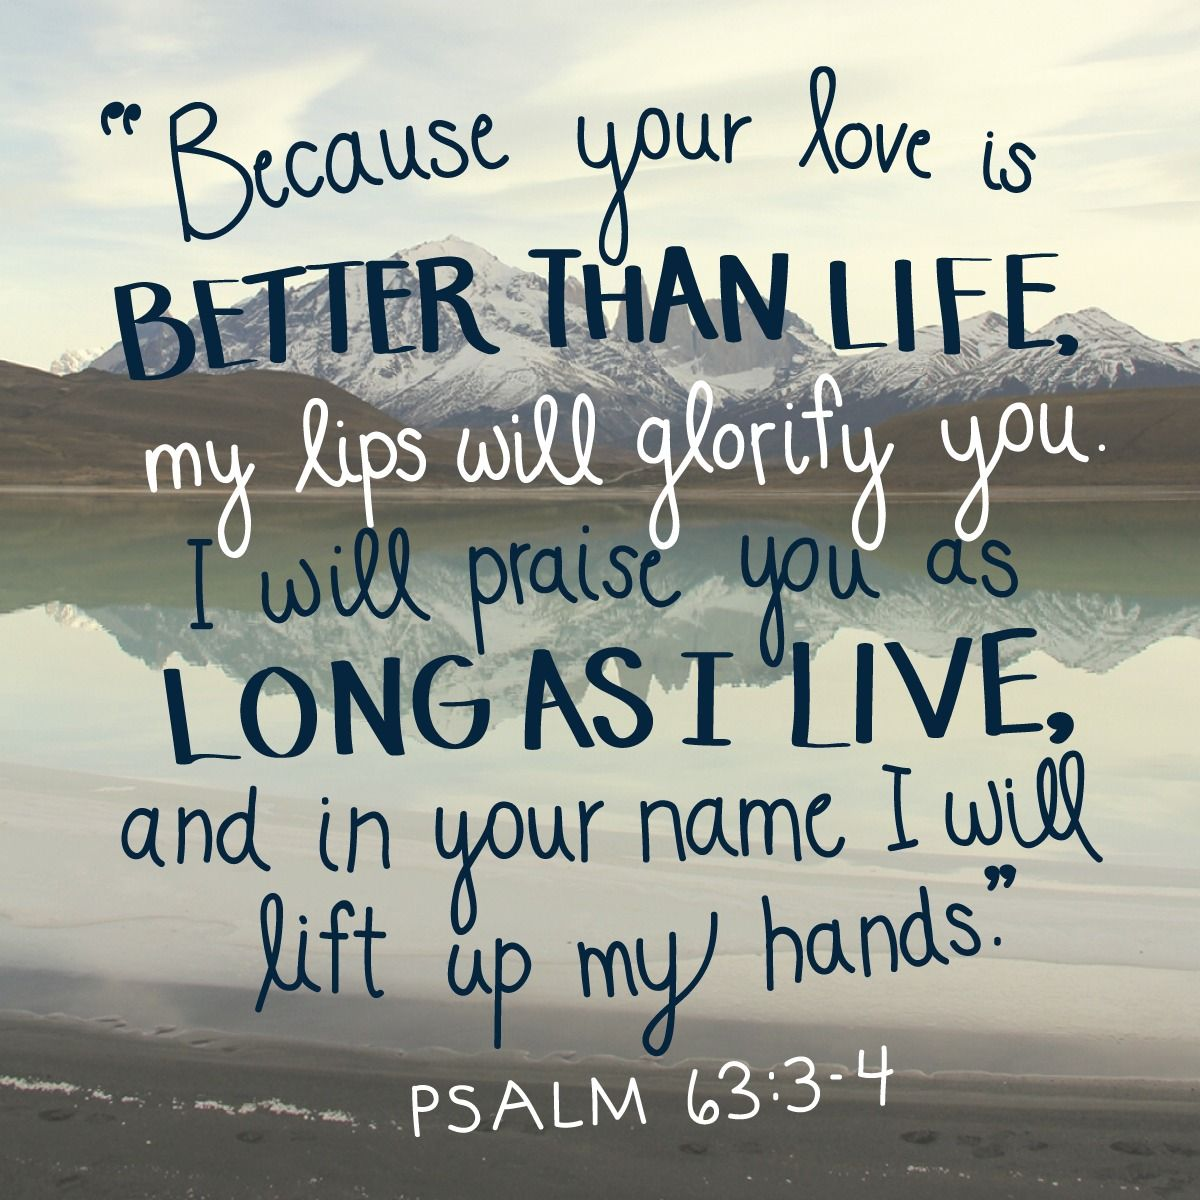 """Verse of the week - Psalm 63:3-4, """"Because your love is"""